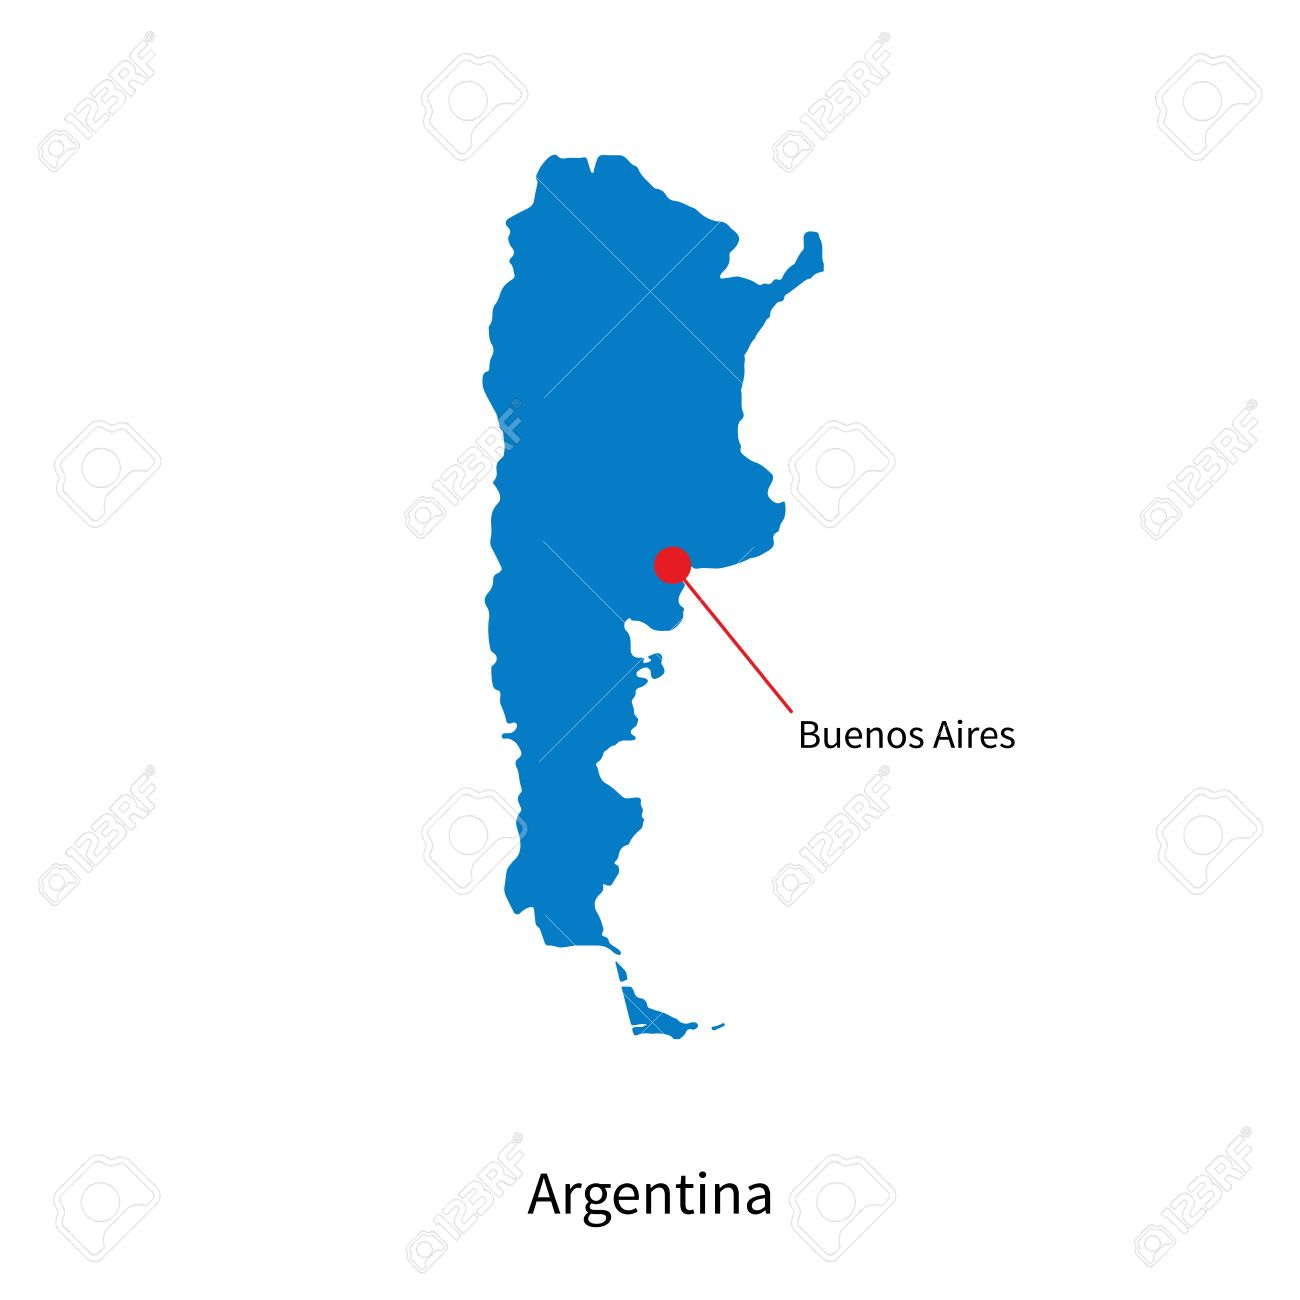 Detailed Vector Map Of Argentina And Capital City Buenos Aires.